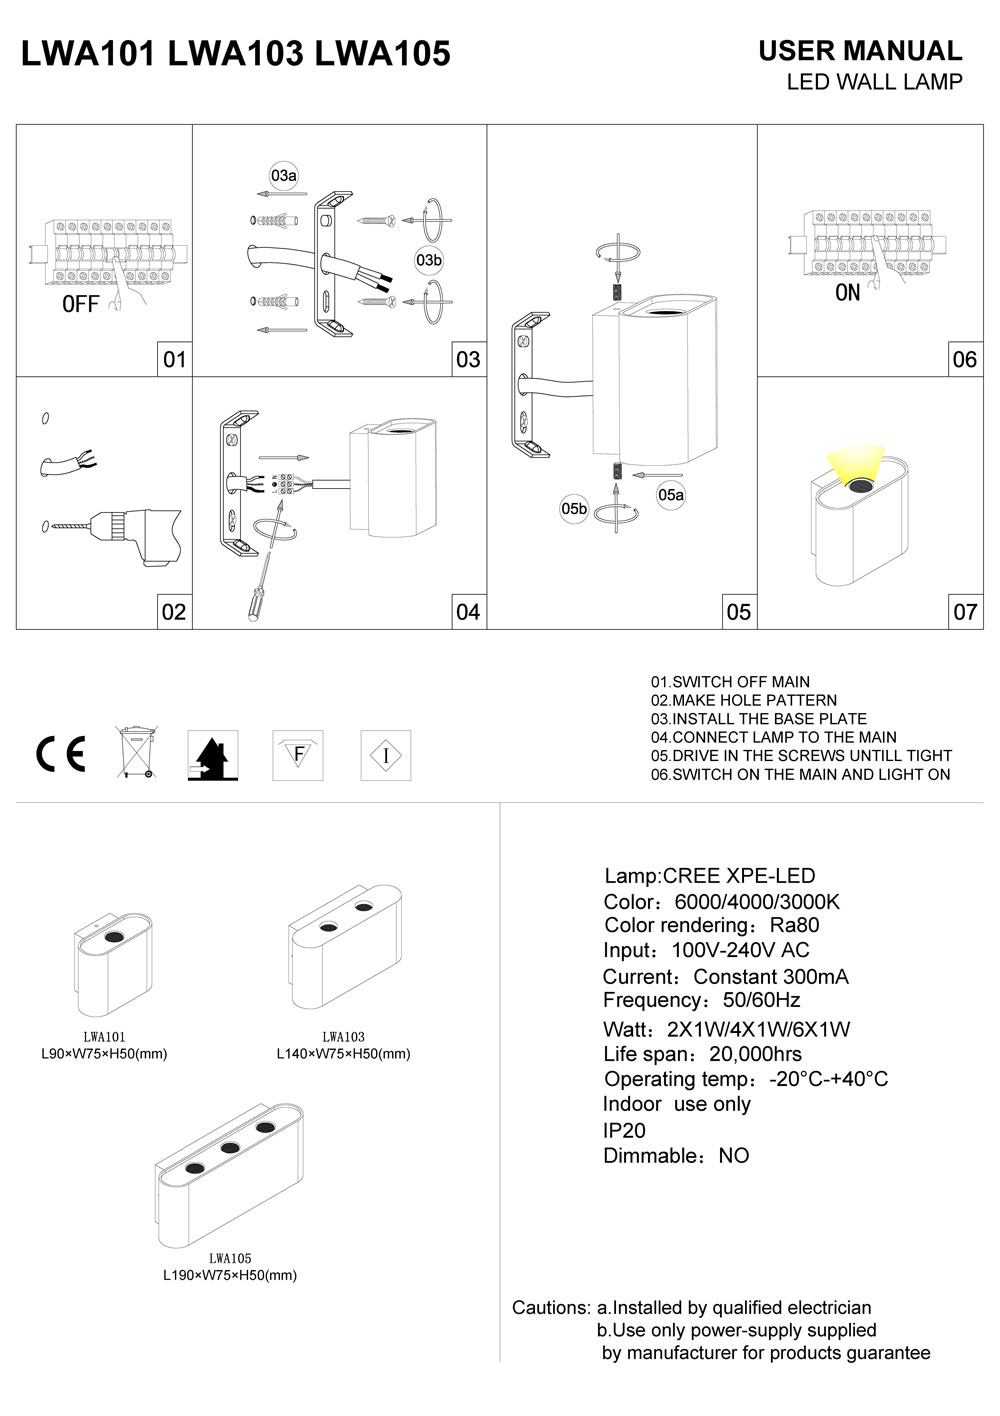 LWA101-LWA103-LWA105 interior LED wall lighting installation guide